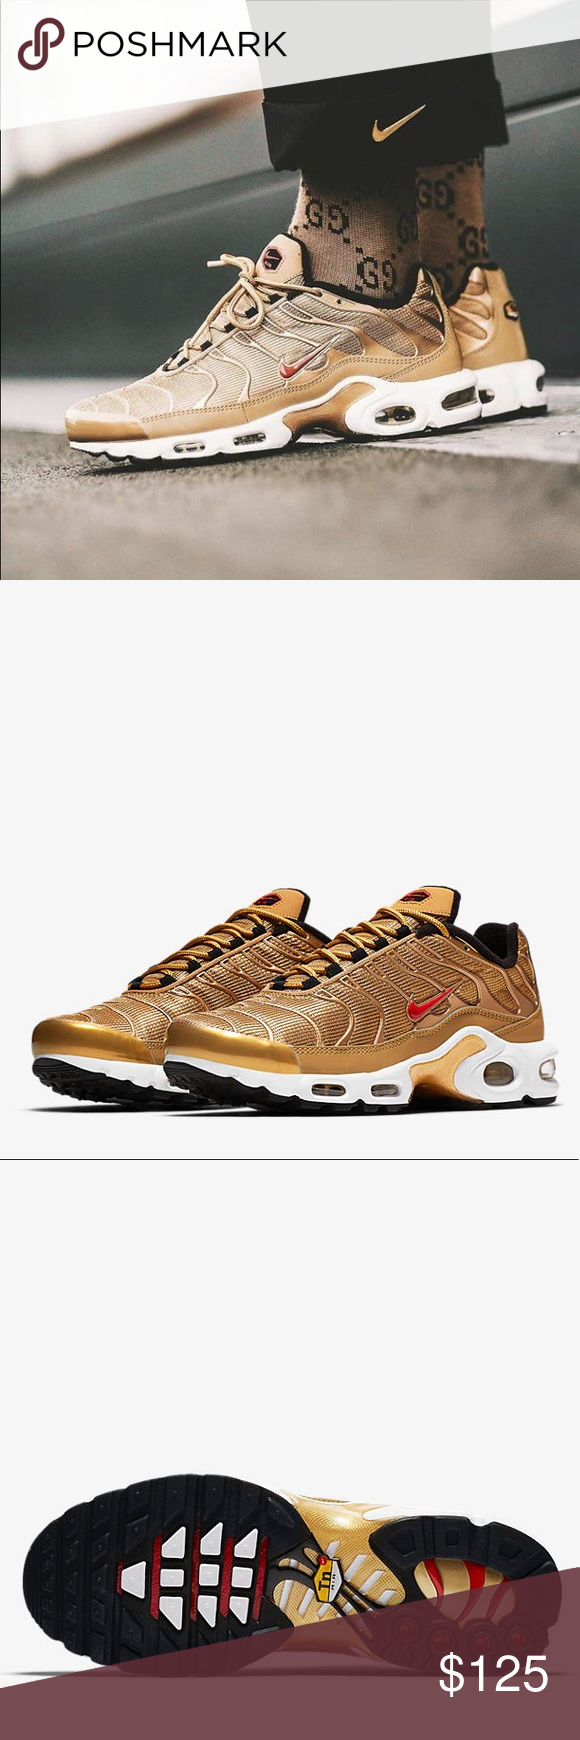 f562719a0c NWT Metallic gold Nike Air max Plus QS Brand New women size 6 100% Authentic